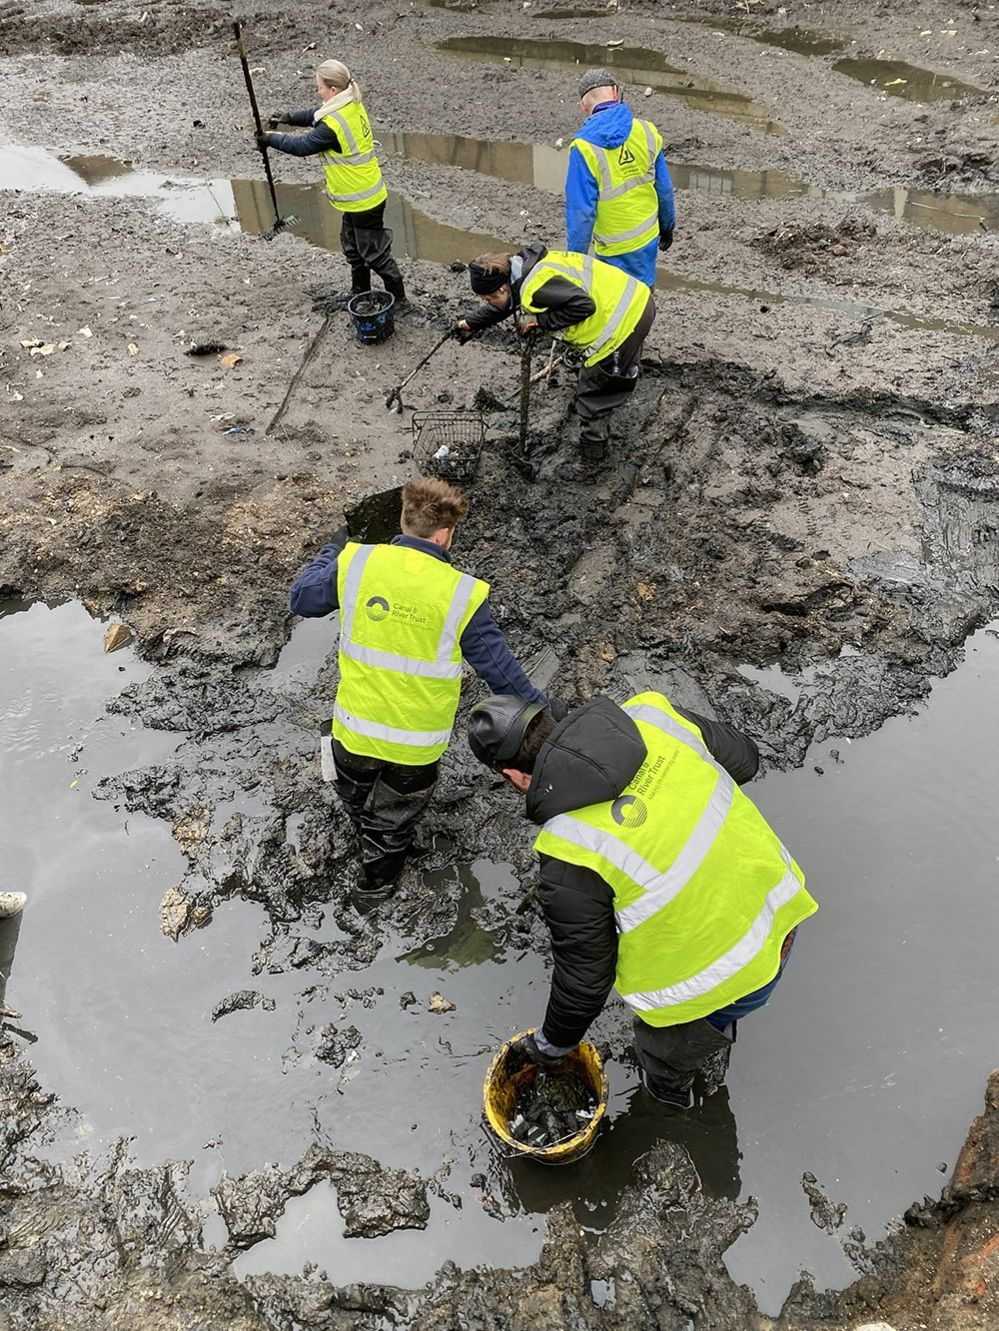 Volunteer litter-pickers brave the mud to gather rubbish from the canal bed